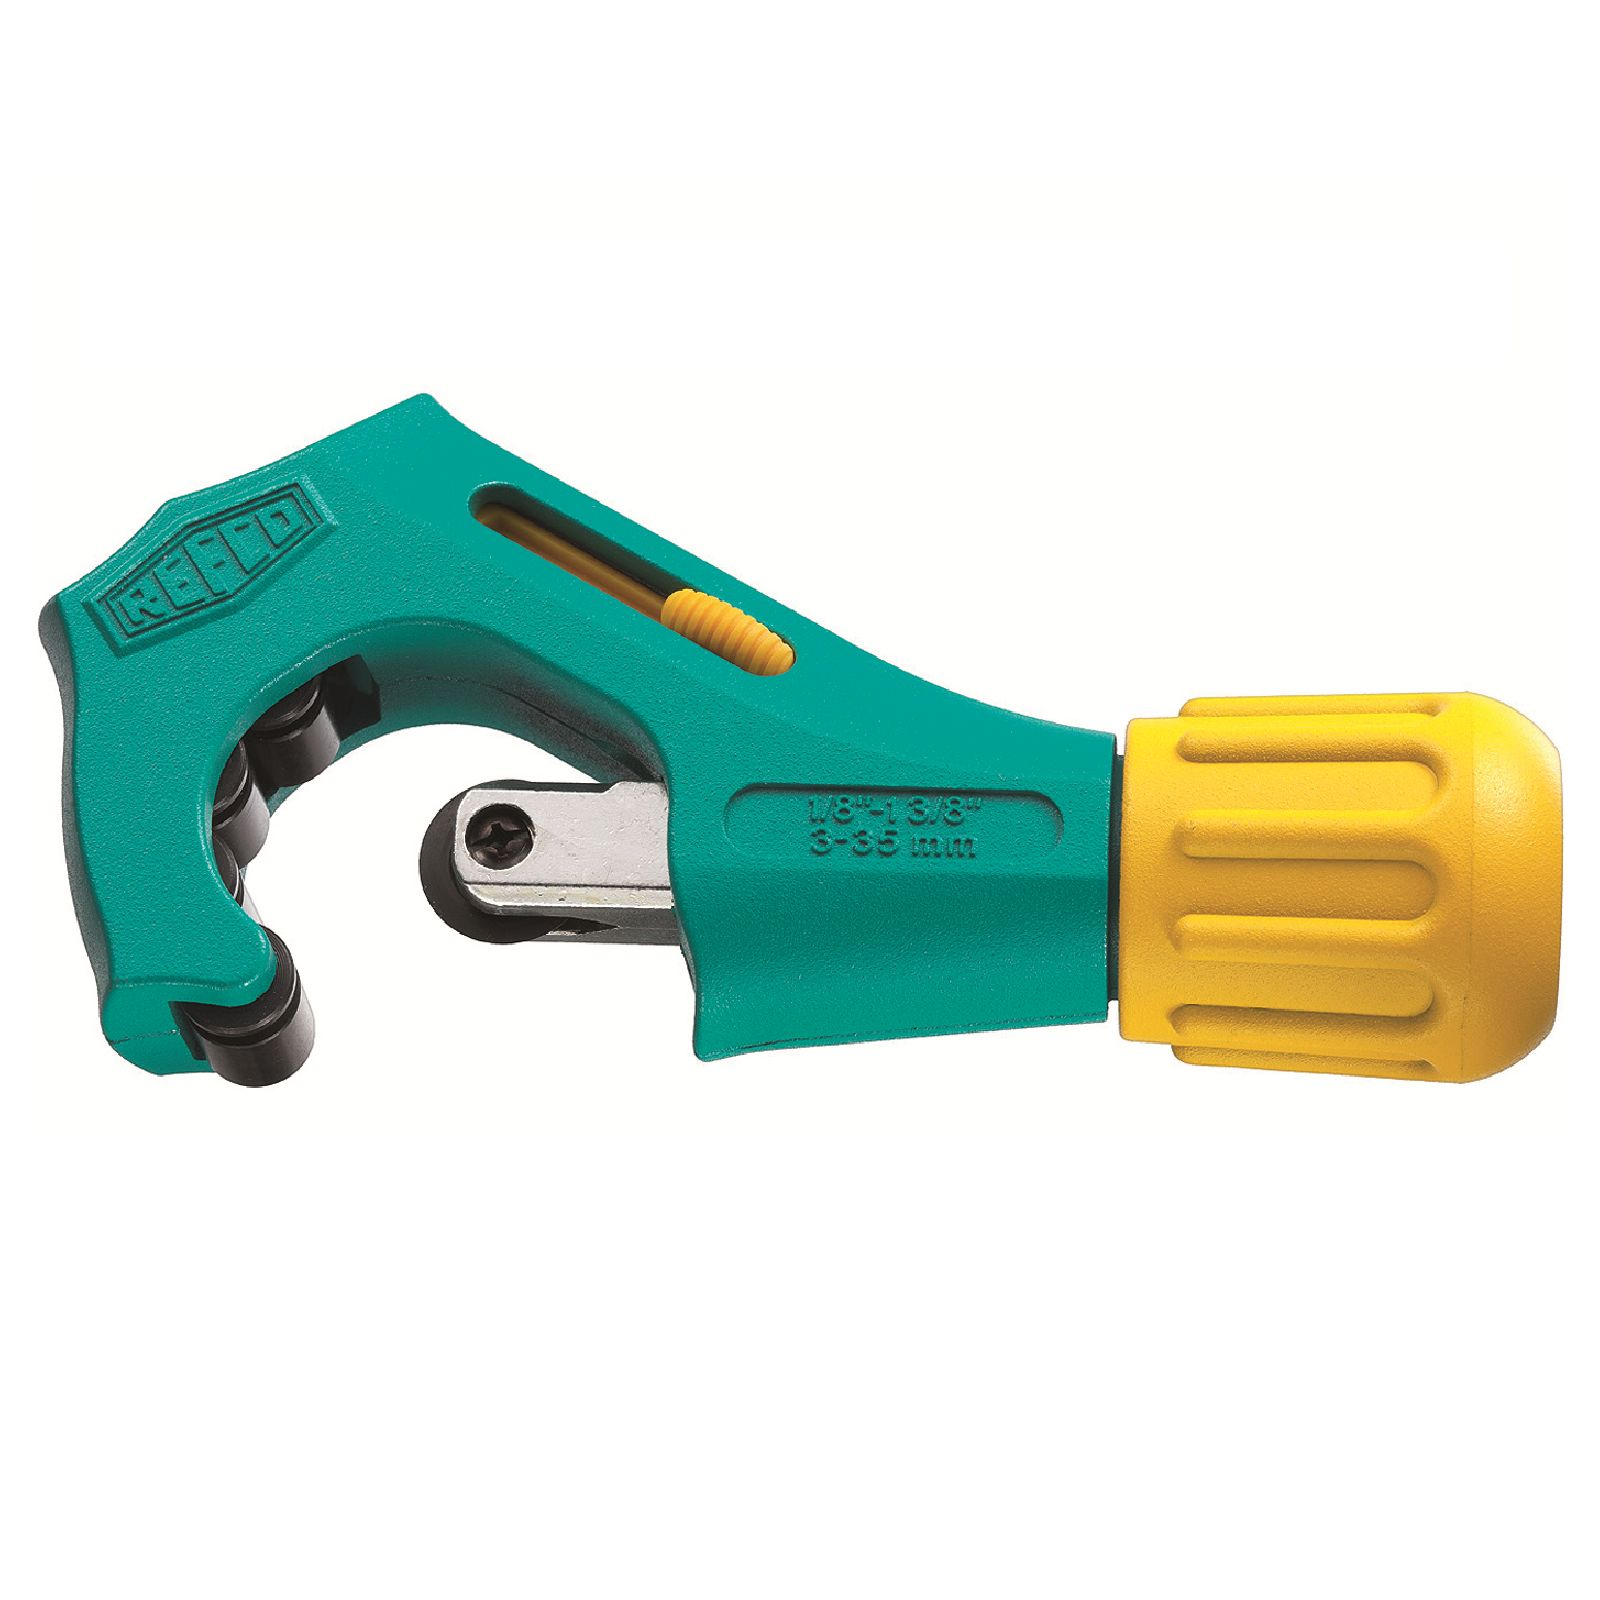 "Refco 4682748 - R-35 1/8""-1-3/8"" Tube Cutter"